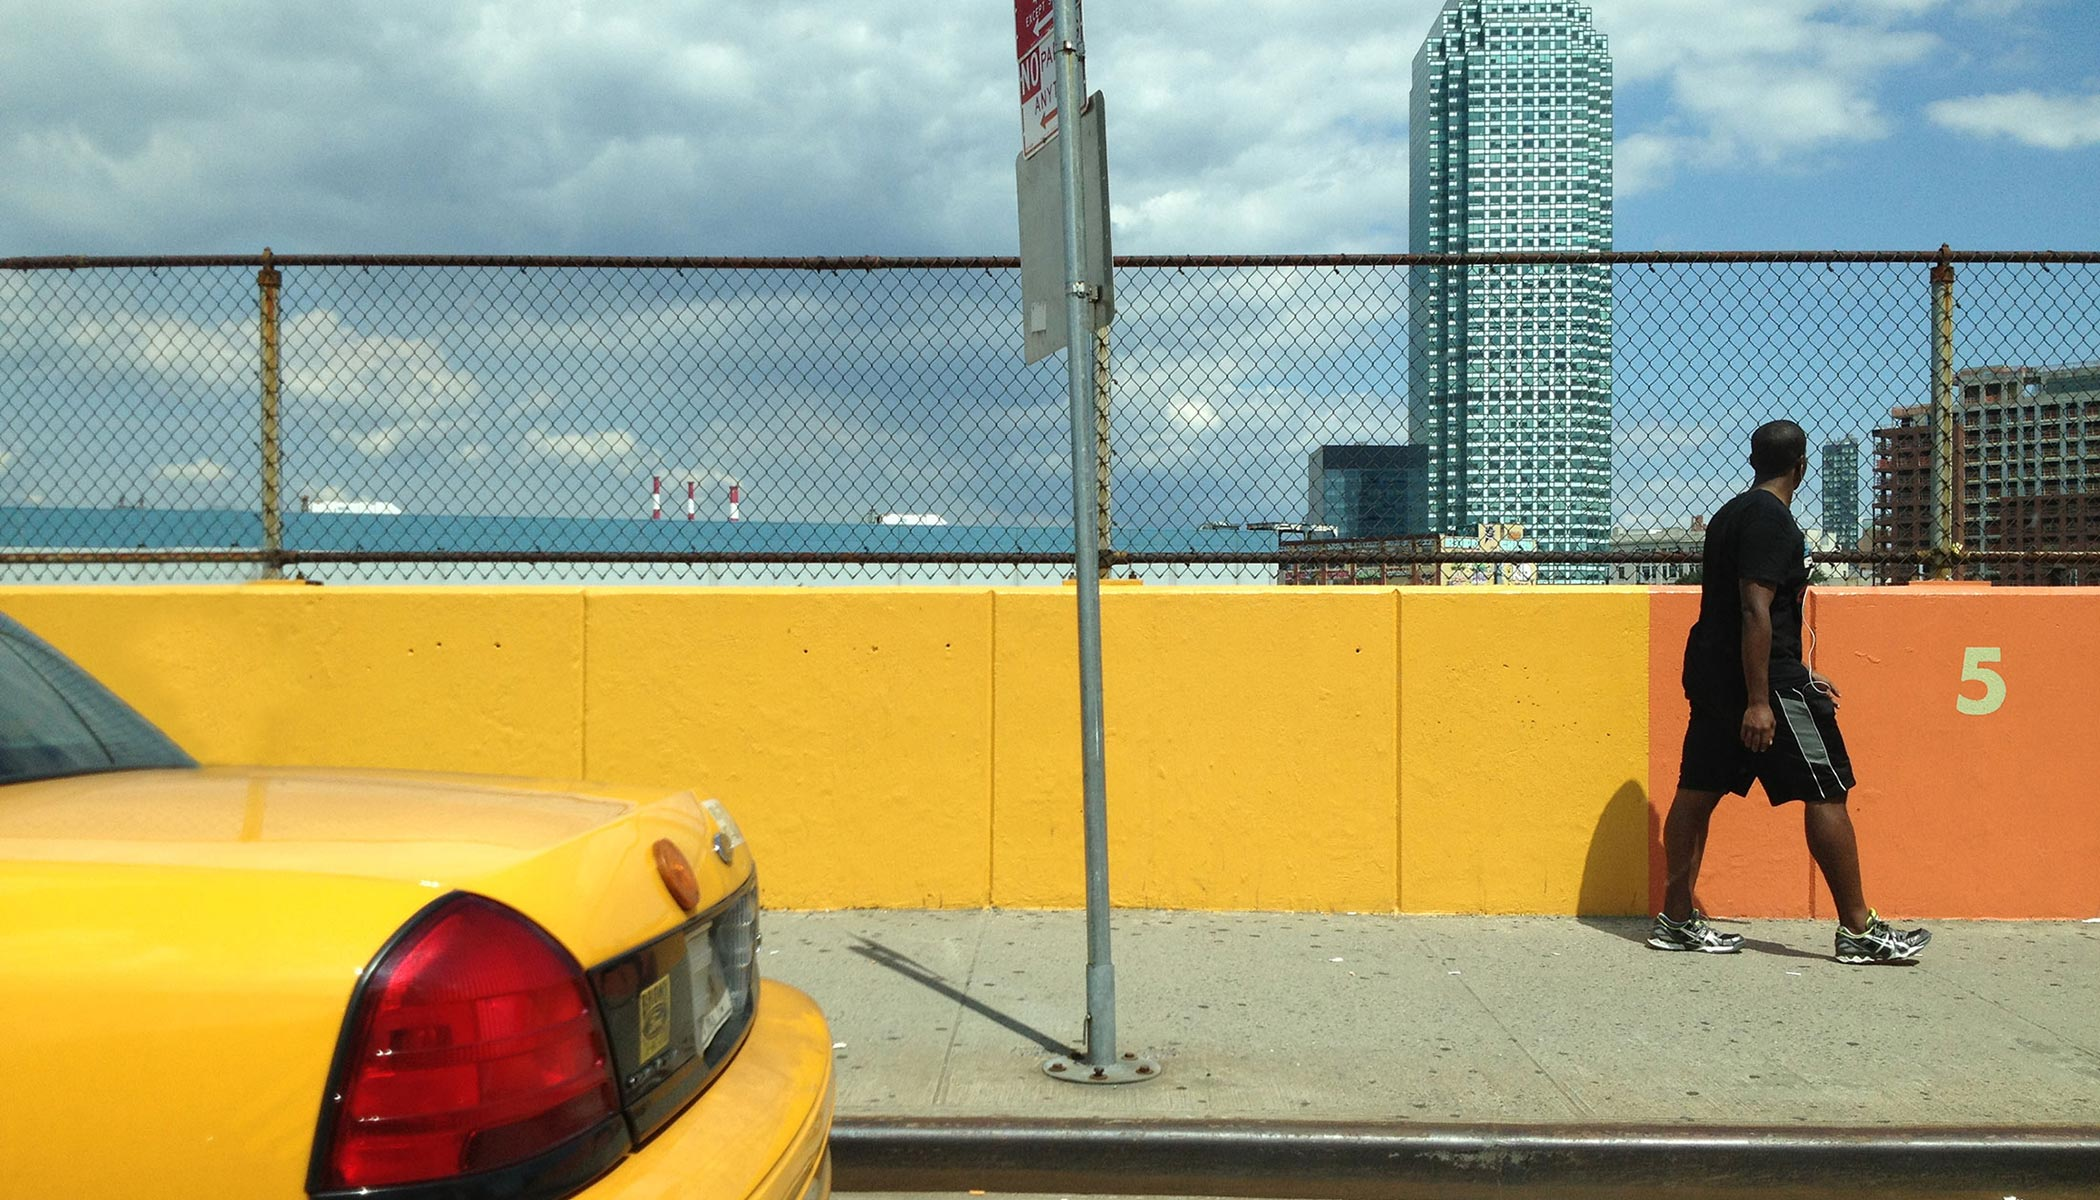 Life-new-york-yellow-cab-yellow-wall